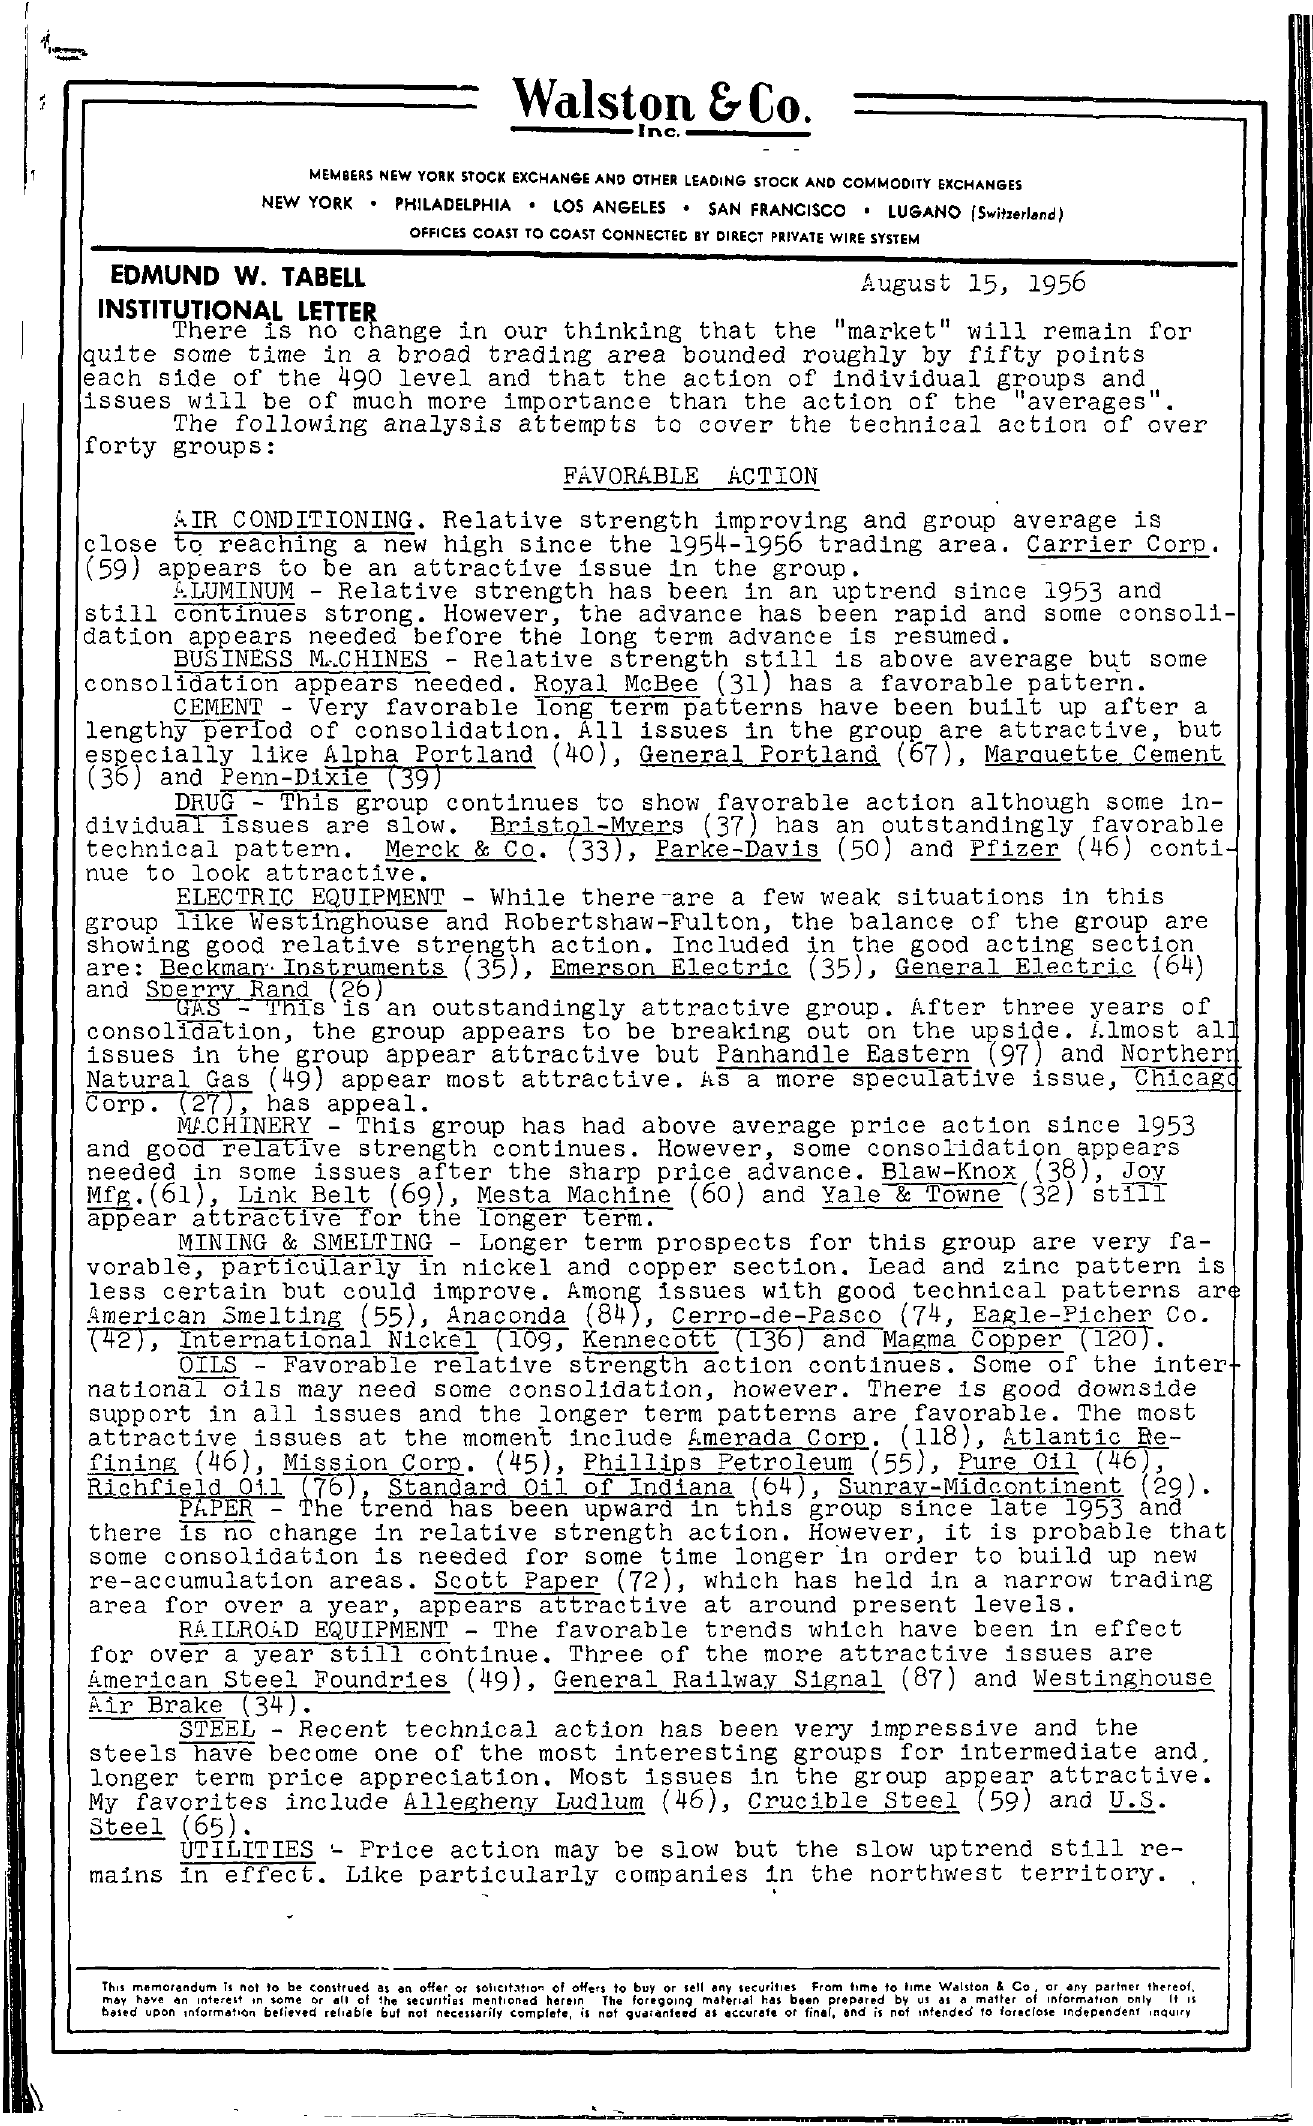 Tabell's Market Letter - August 15, 1956 page 1